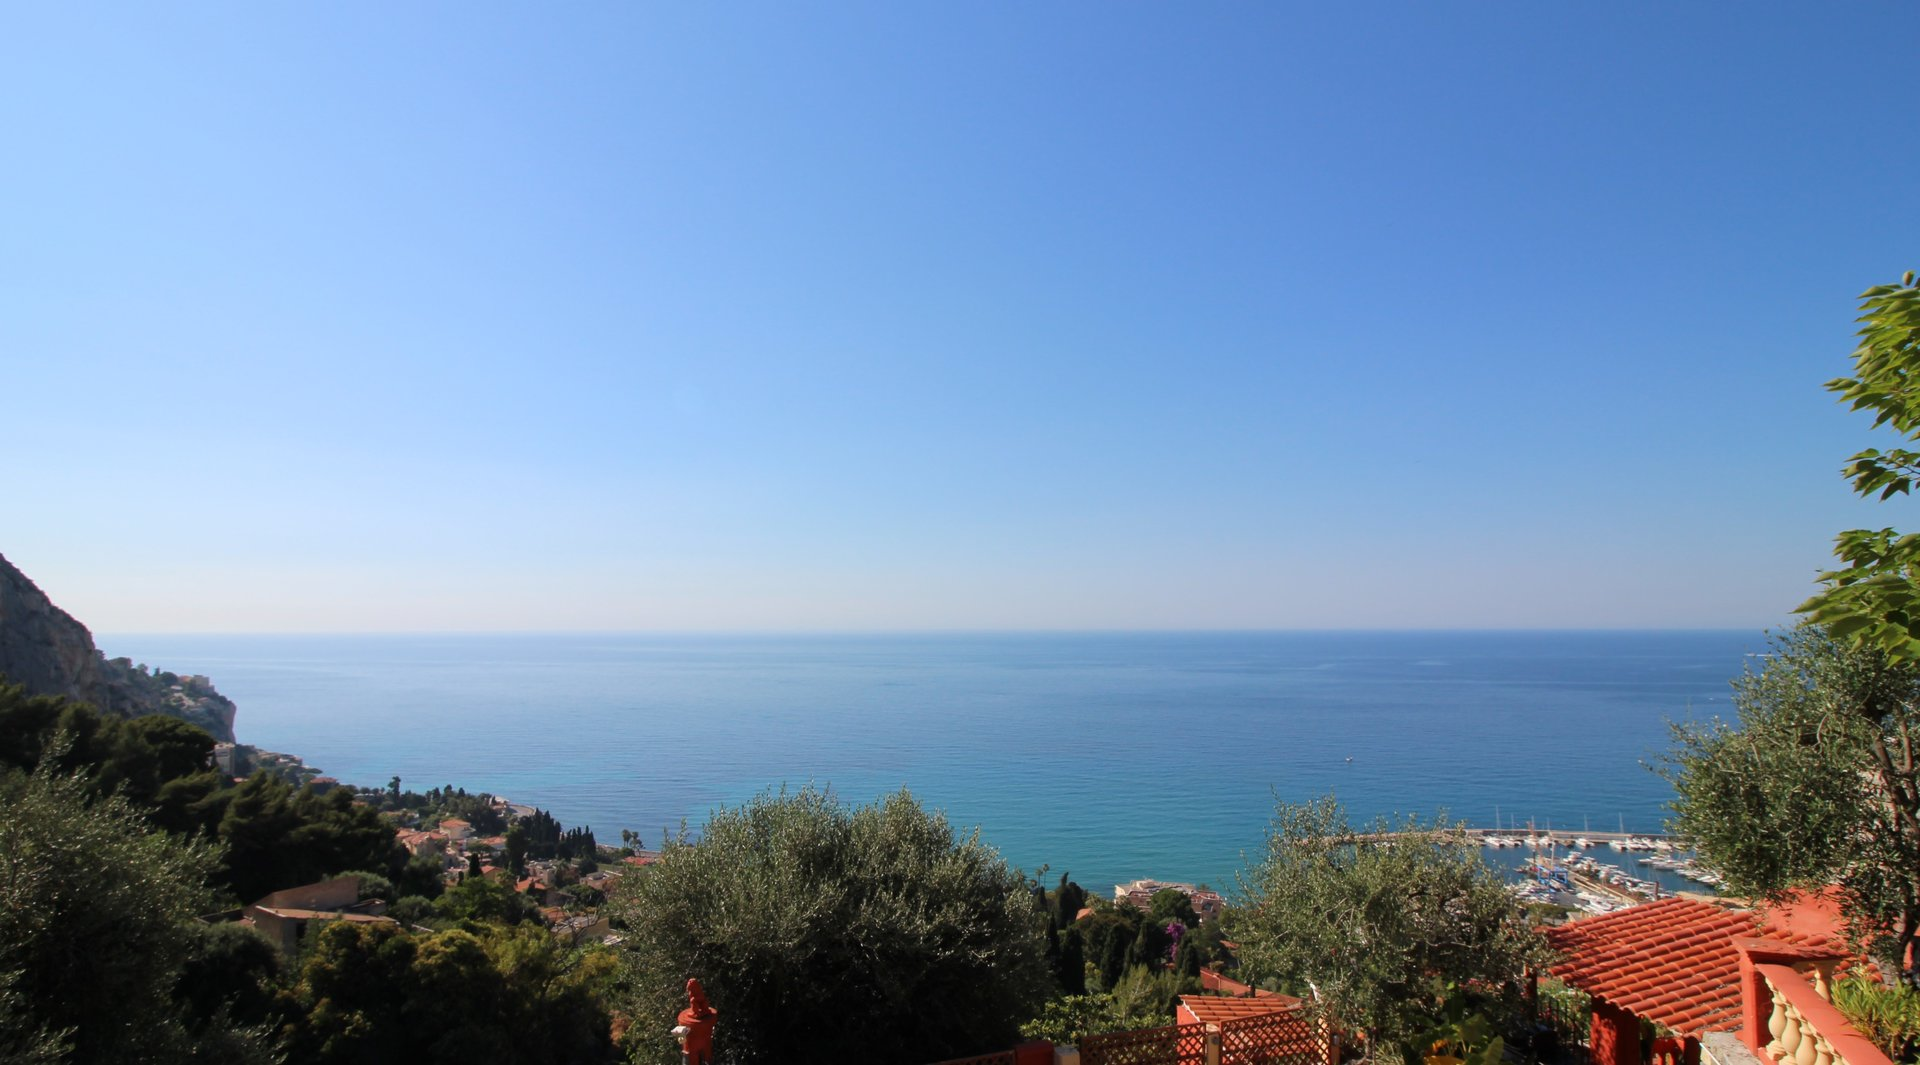 Sale Building land - Menton Garavan